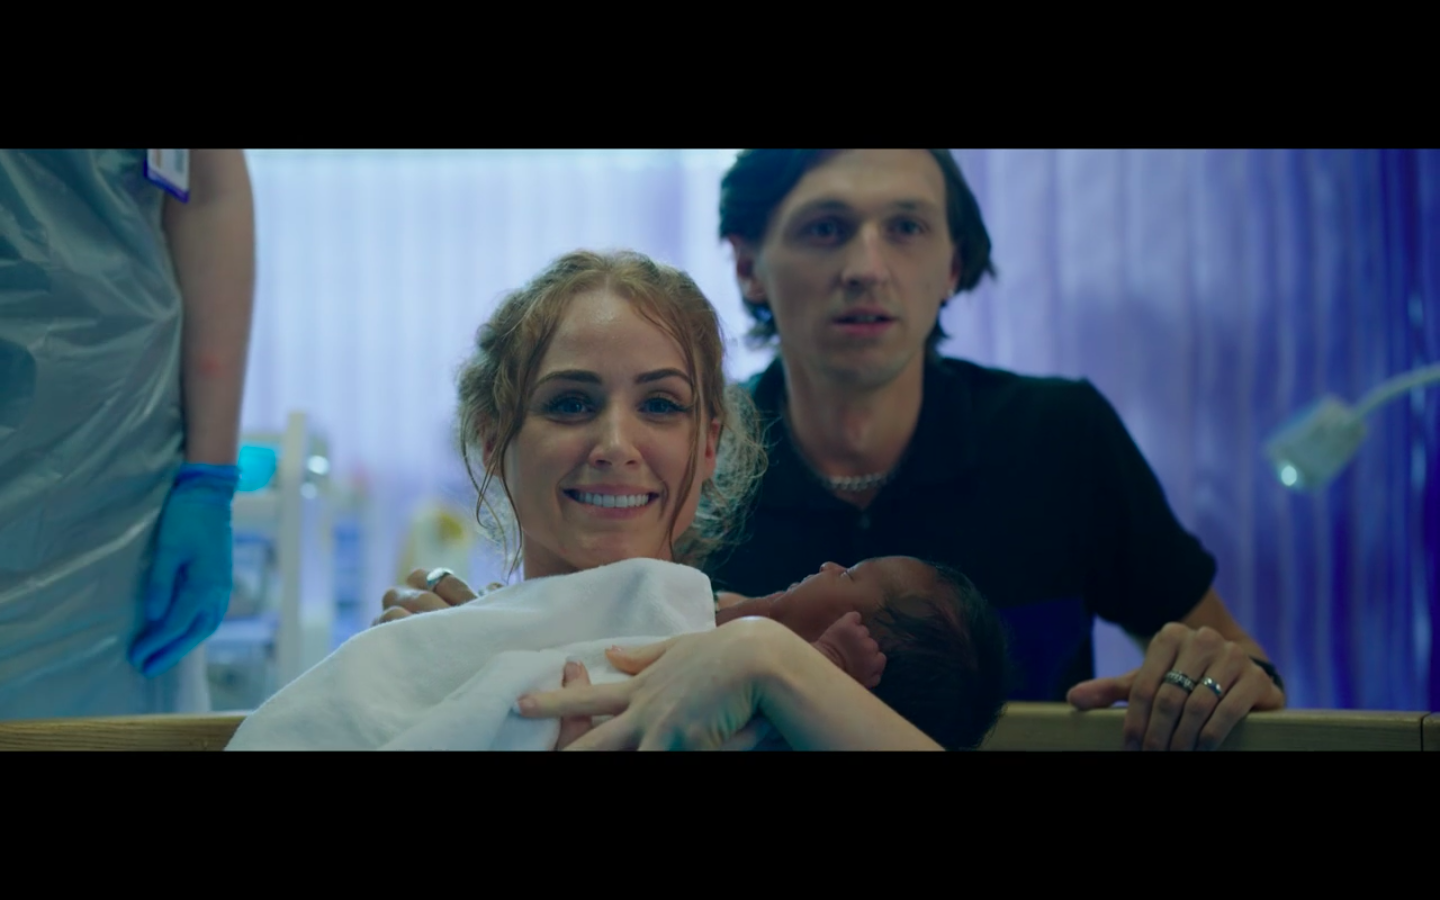 A white woman who has just given birth holds a supposedly new born Black baby while her shell-shocked white husband looks on from behind her.